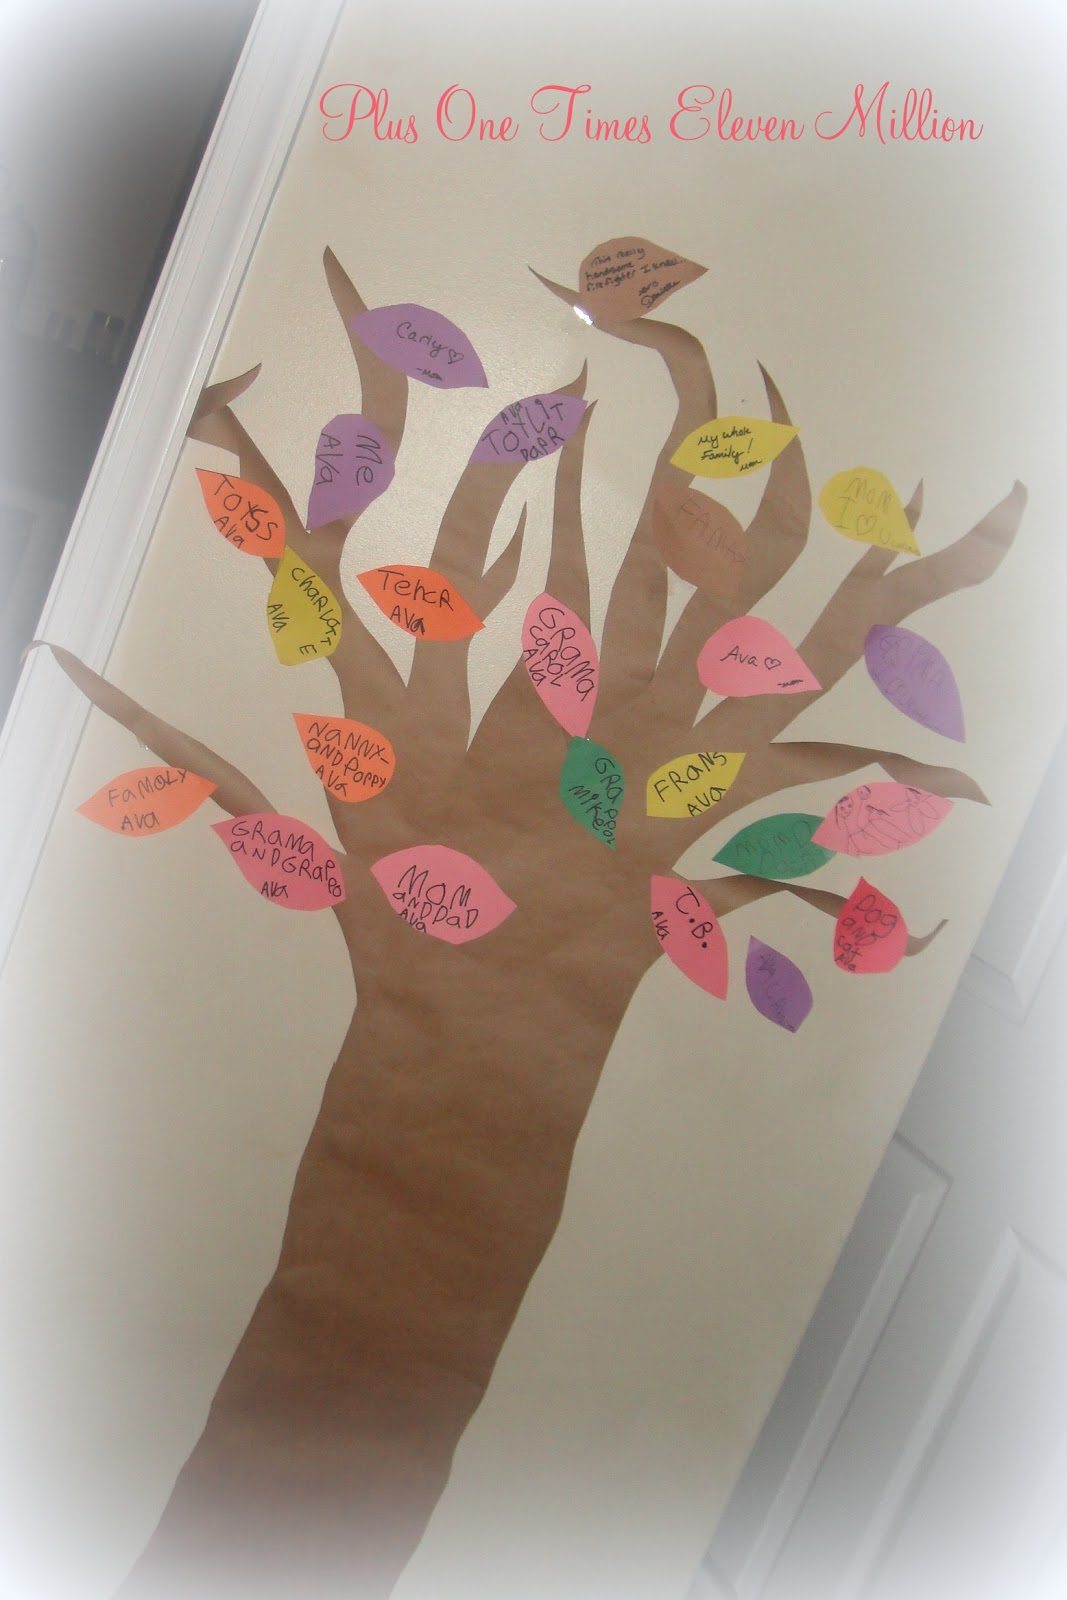 Plus one times eleven million thankful tree for Thankful tree craft for kids